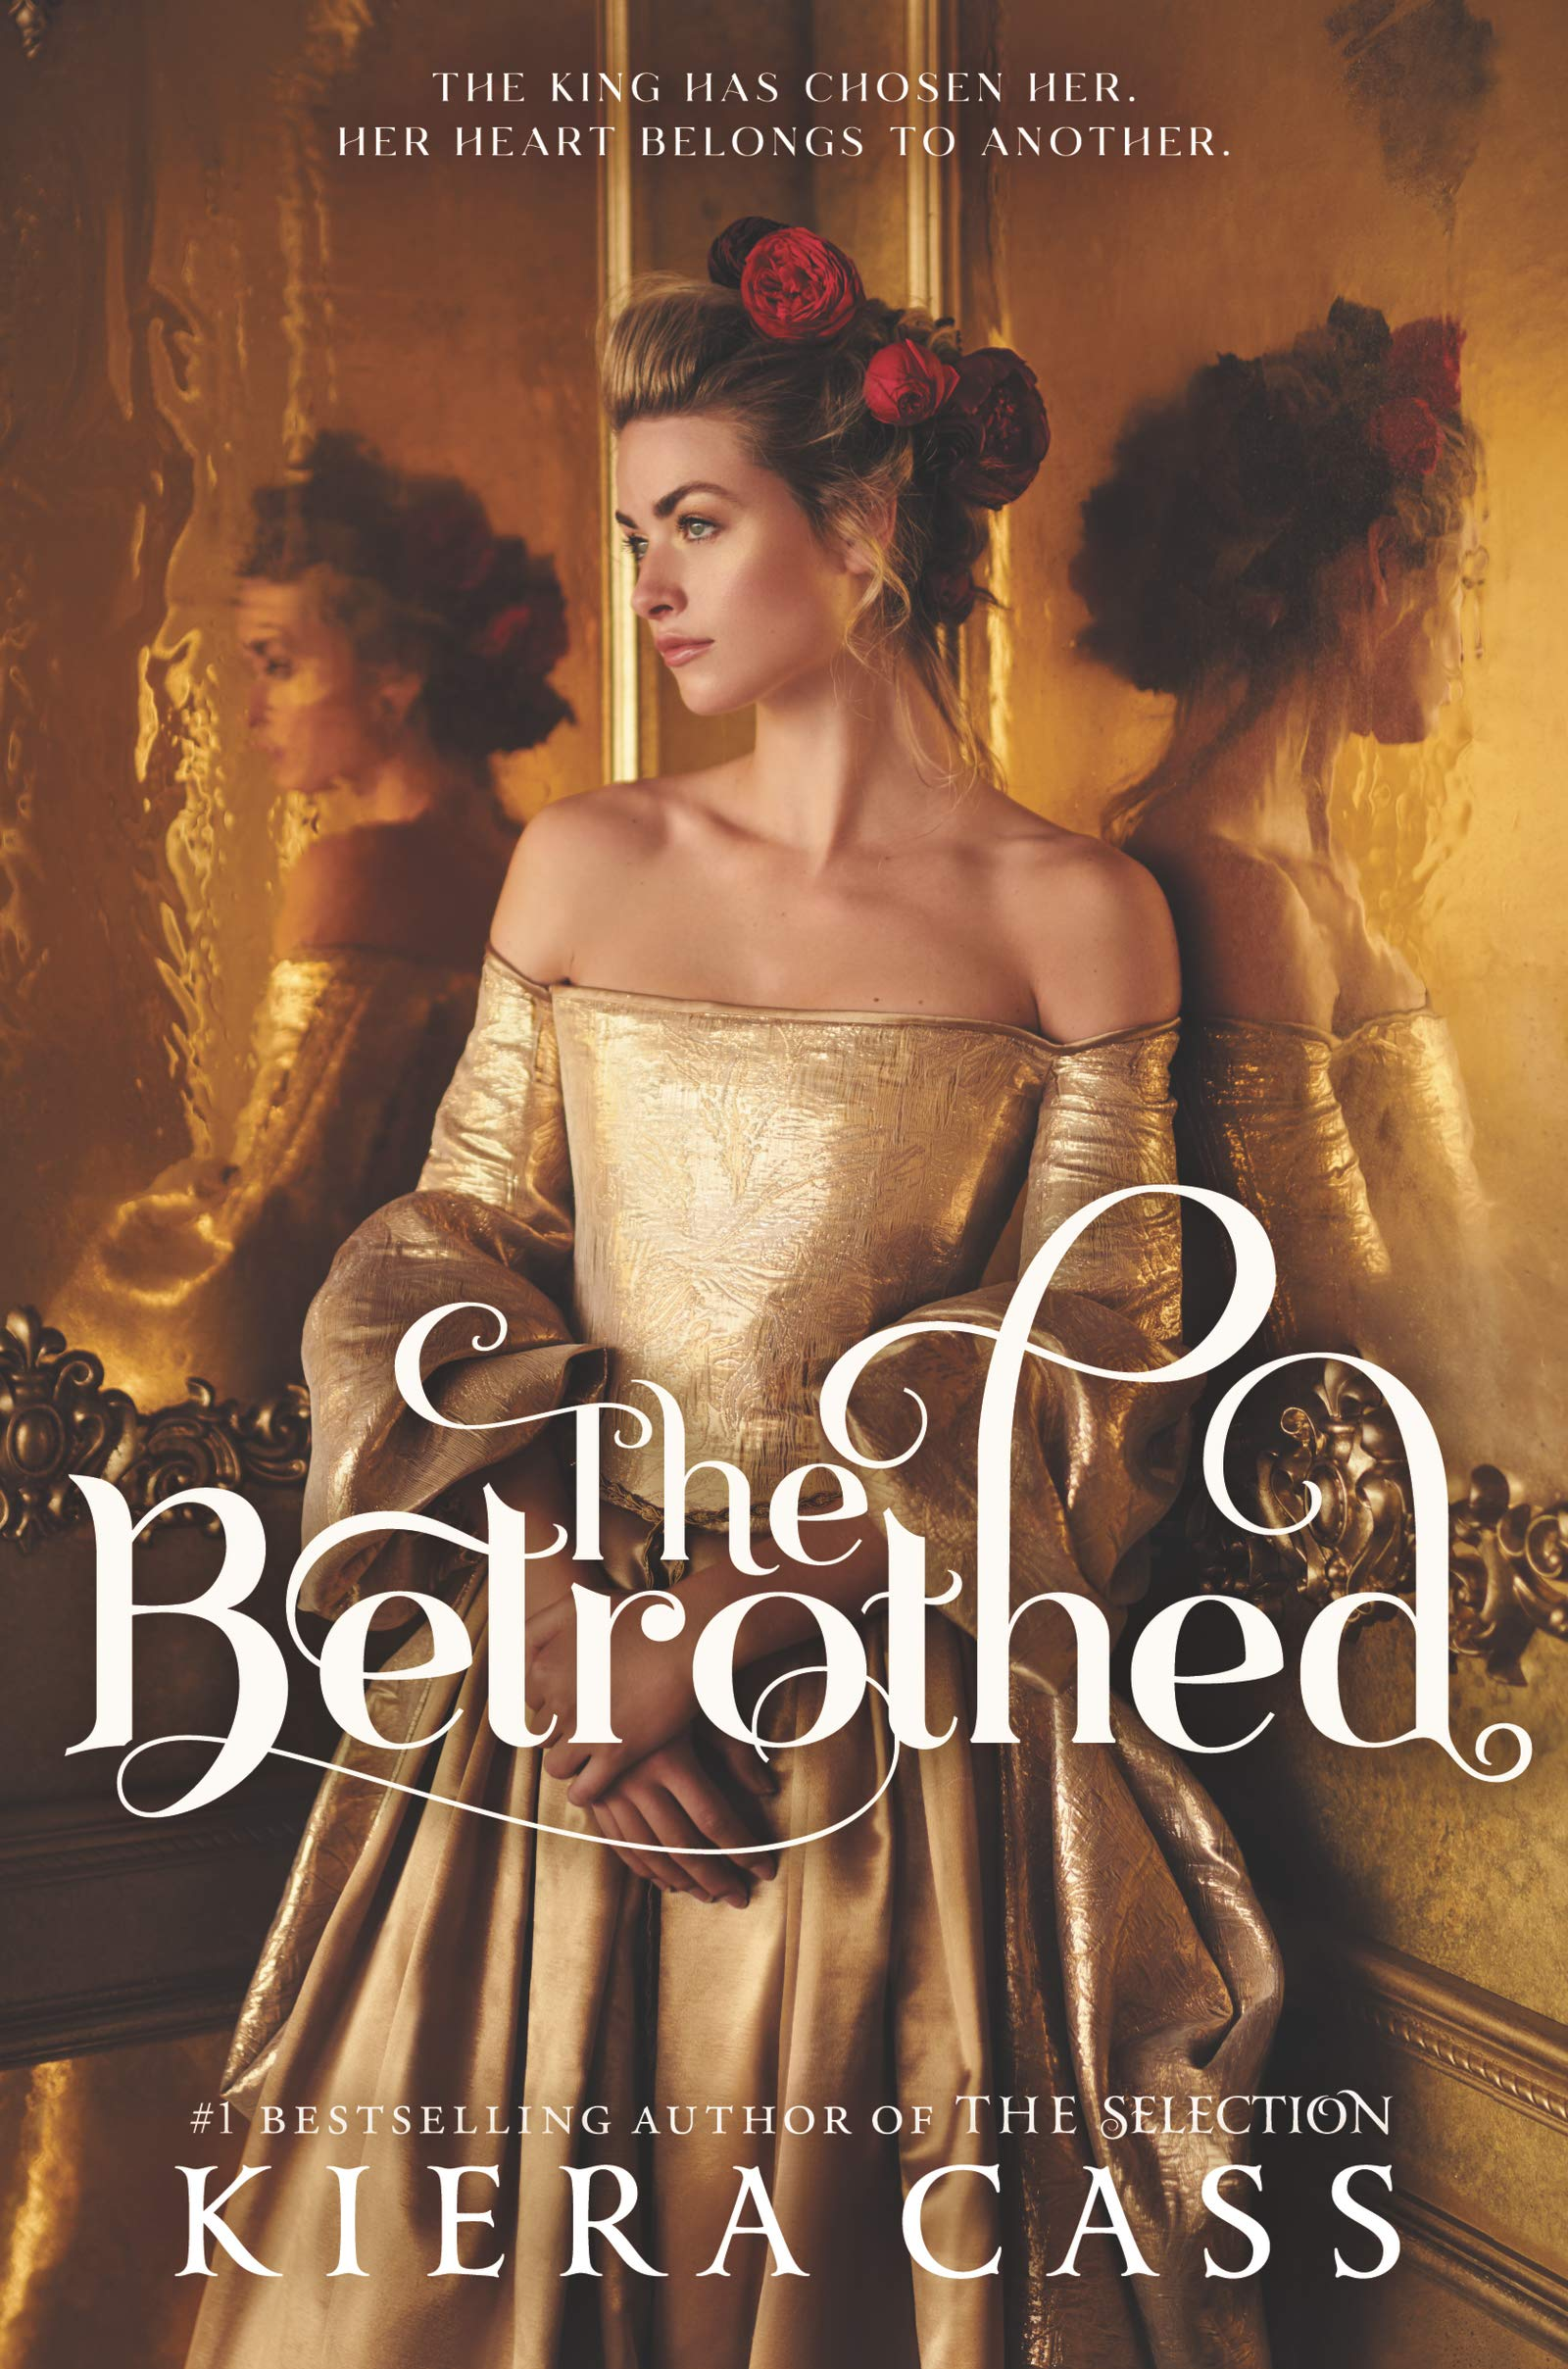 Amazon.com: The Betrothed (9780062291639): Cass, Kiera: Books